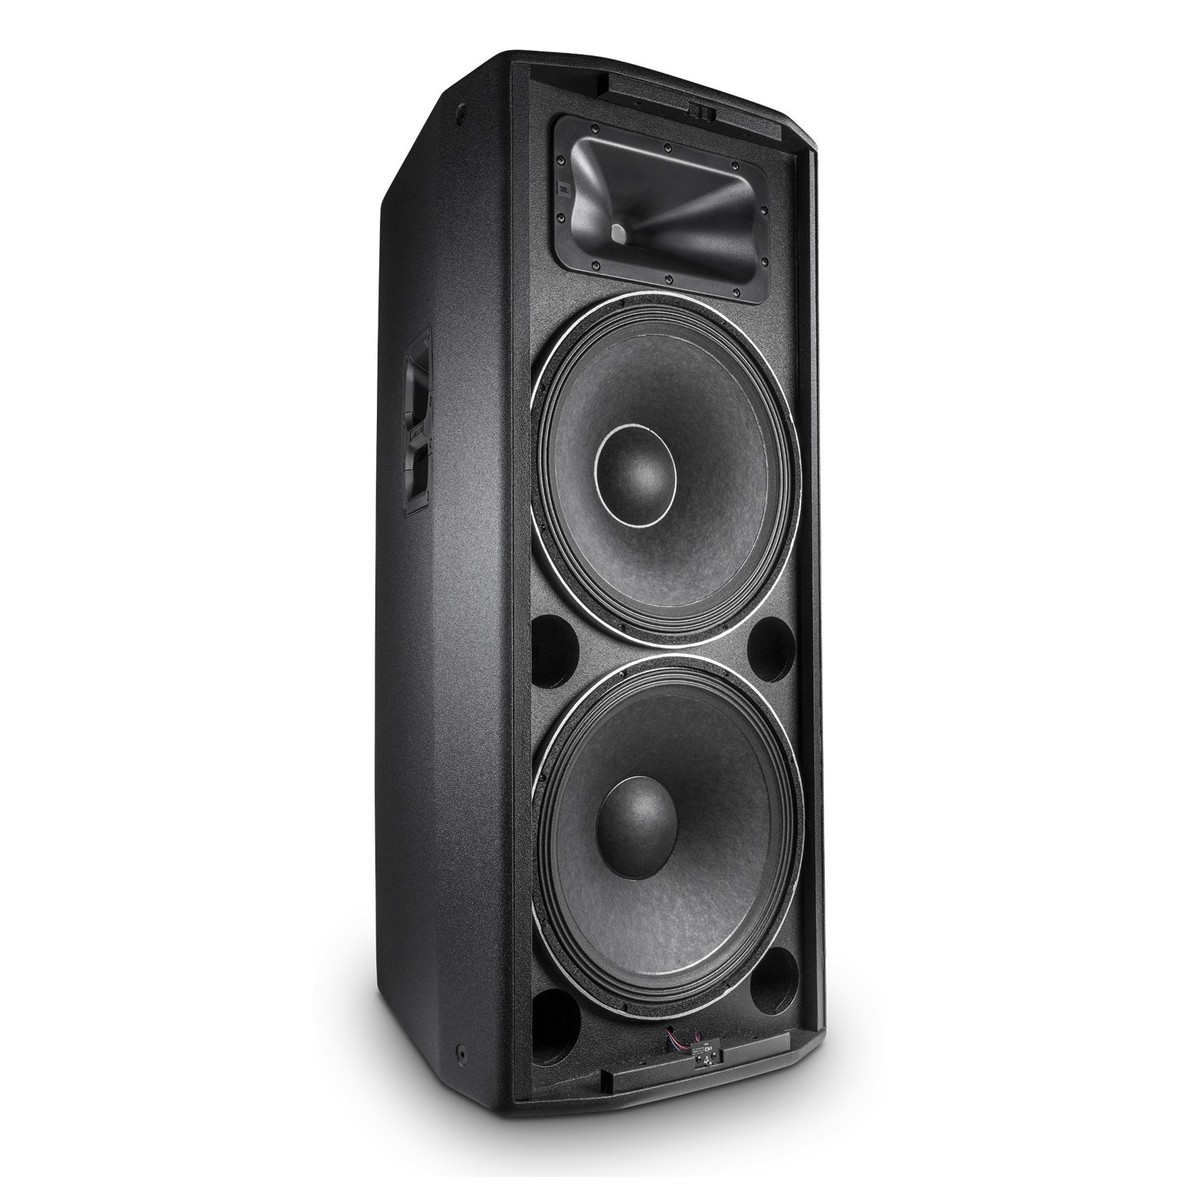 jbl prx825w dual 15 39 39 two way active pa speaker at. Black Bedroom Furniture Sets. Home Design Ideas